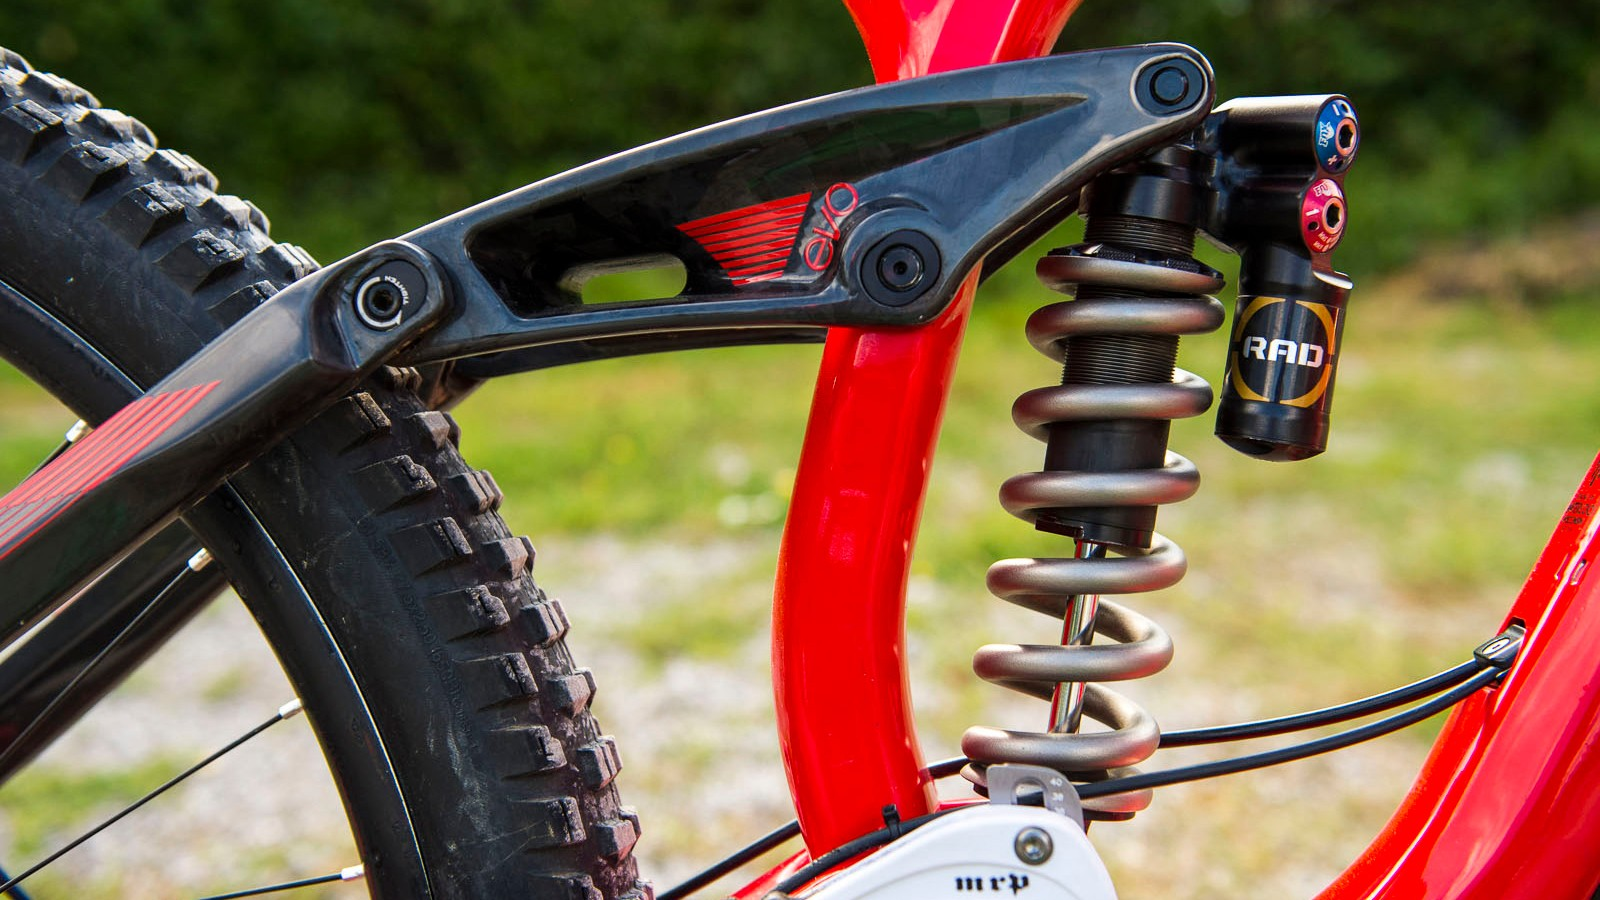 The RAD shock mounted in Brook MacDonald's new Trek Session 650b. It won't be long until one of these wins a race